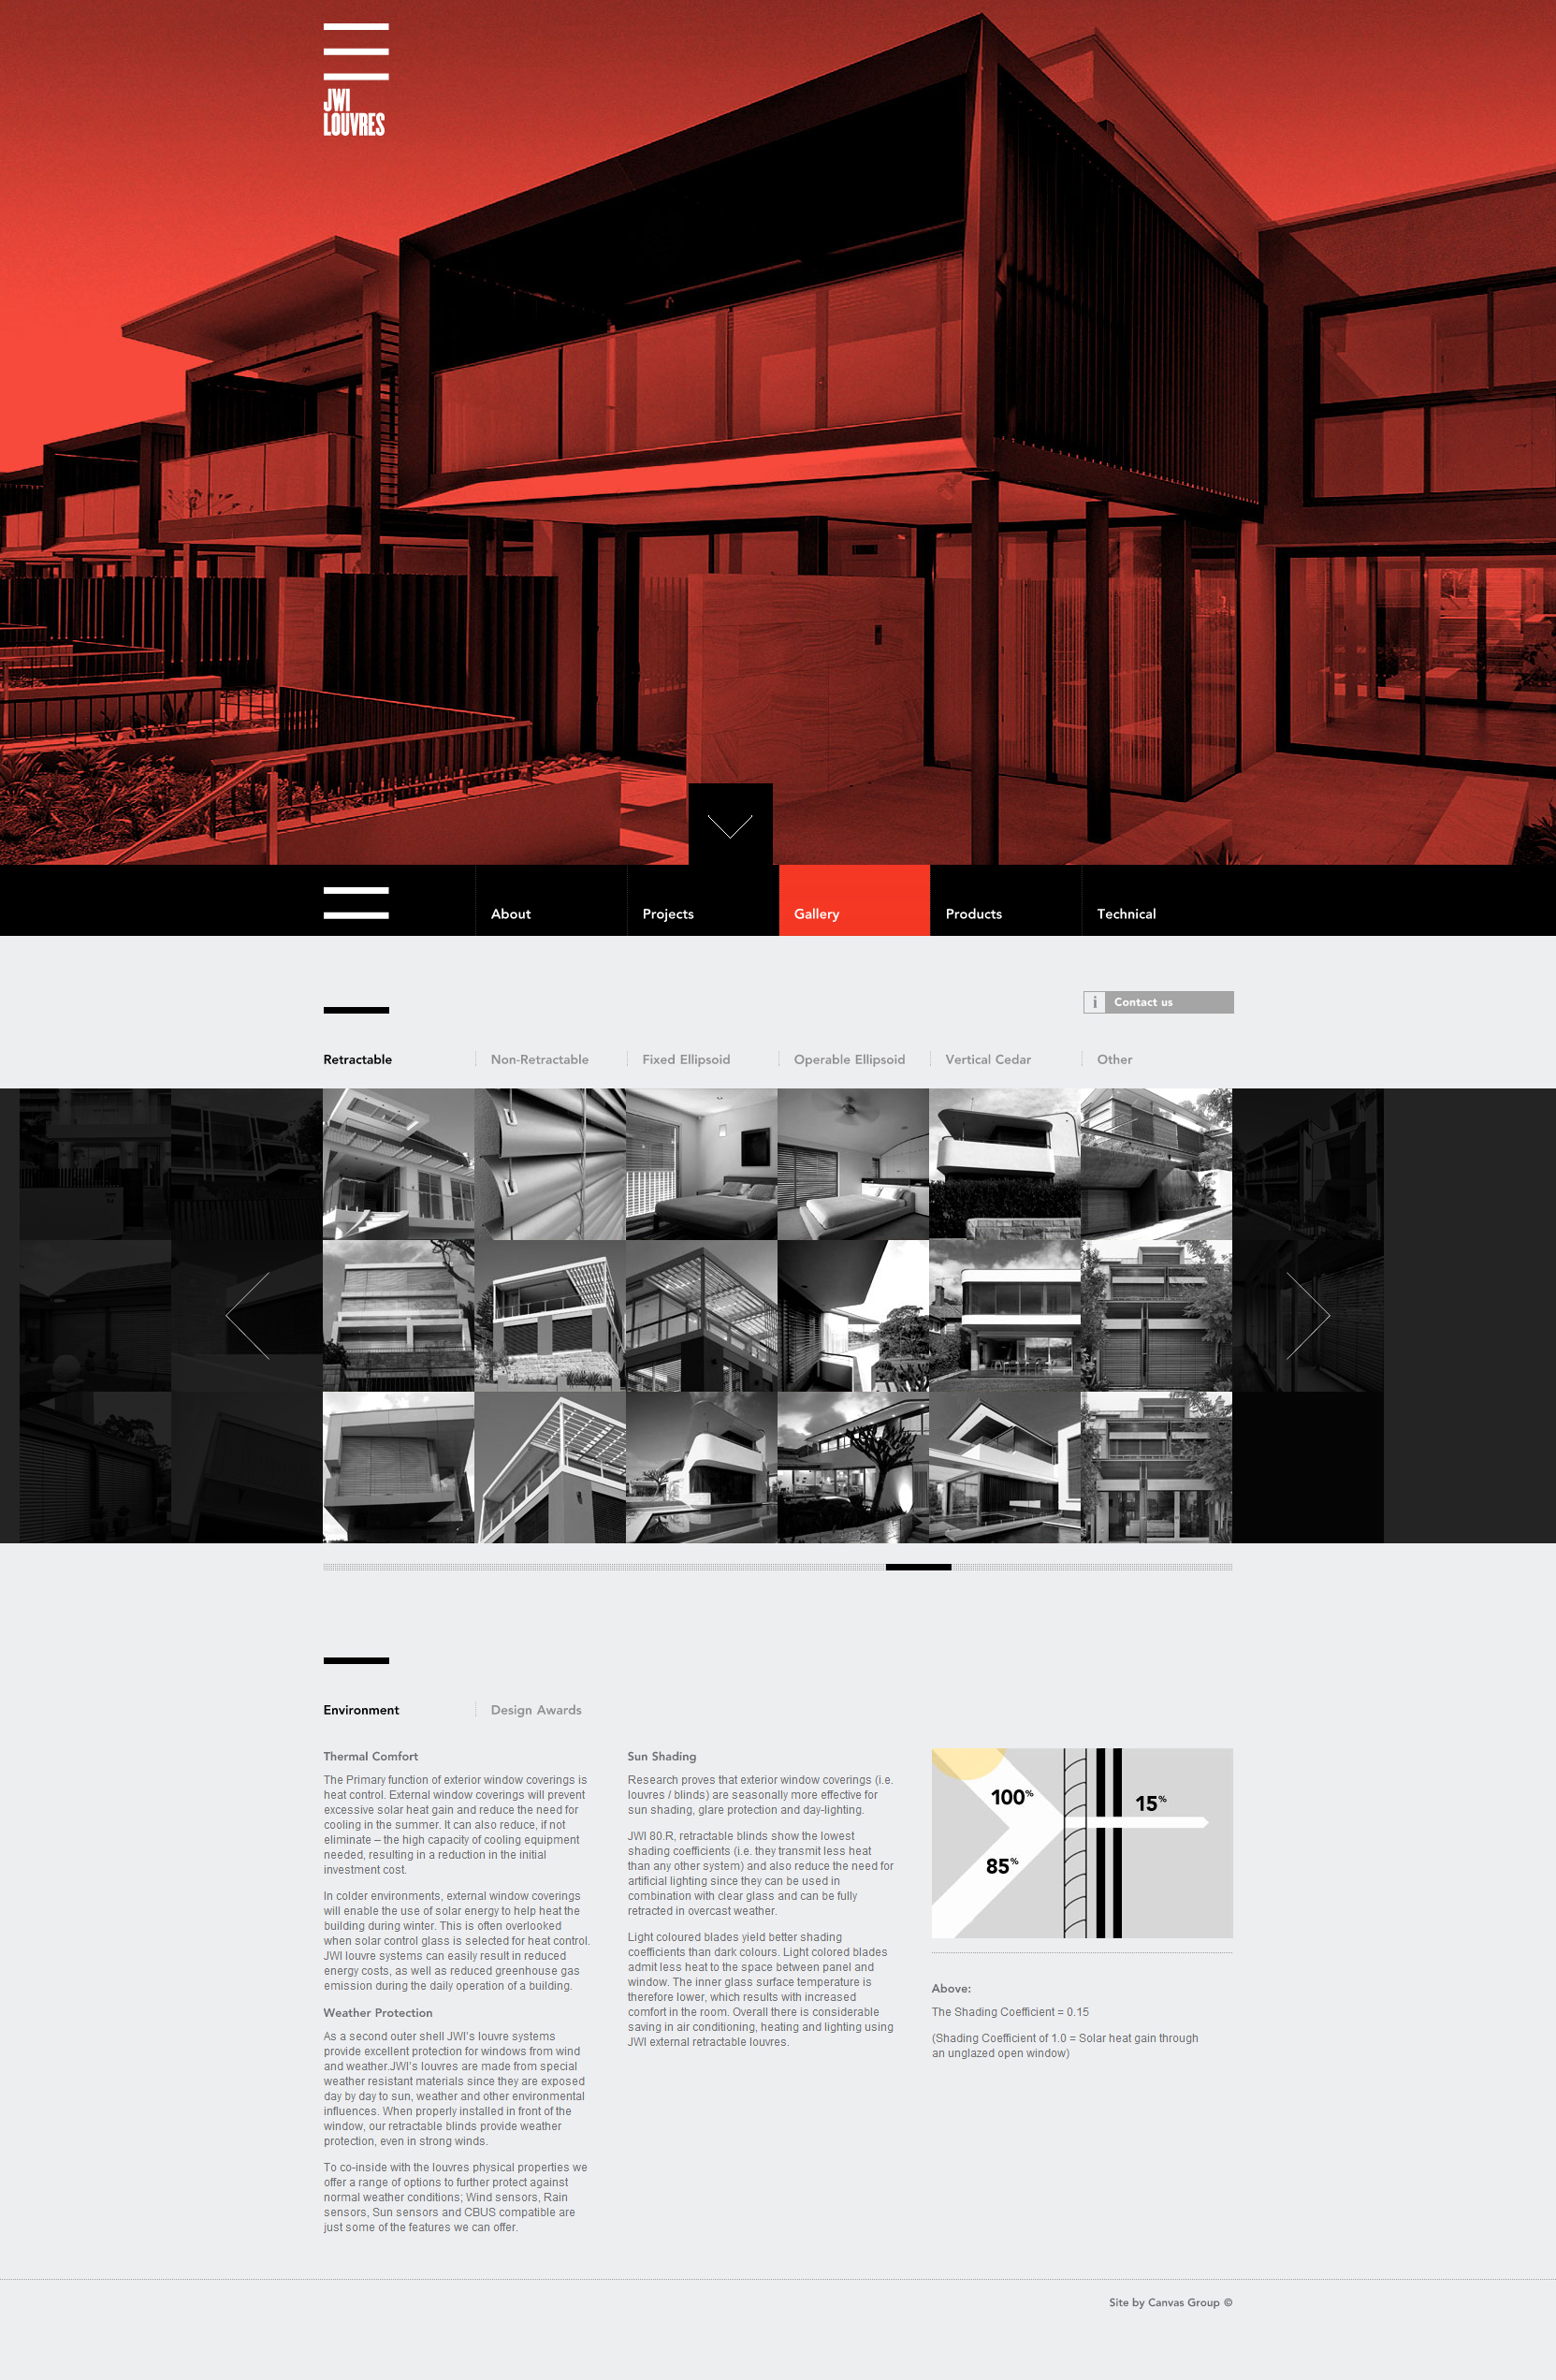 Jwilouvres - Clean Architecture Website For Your Inspiration